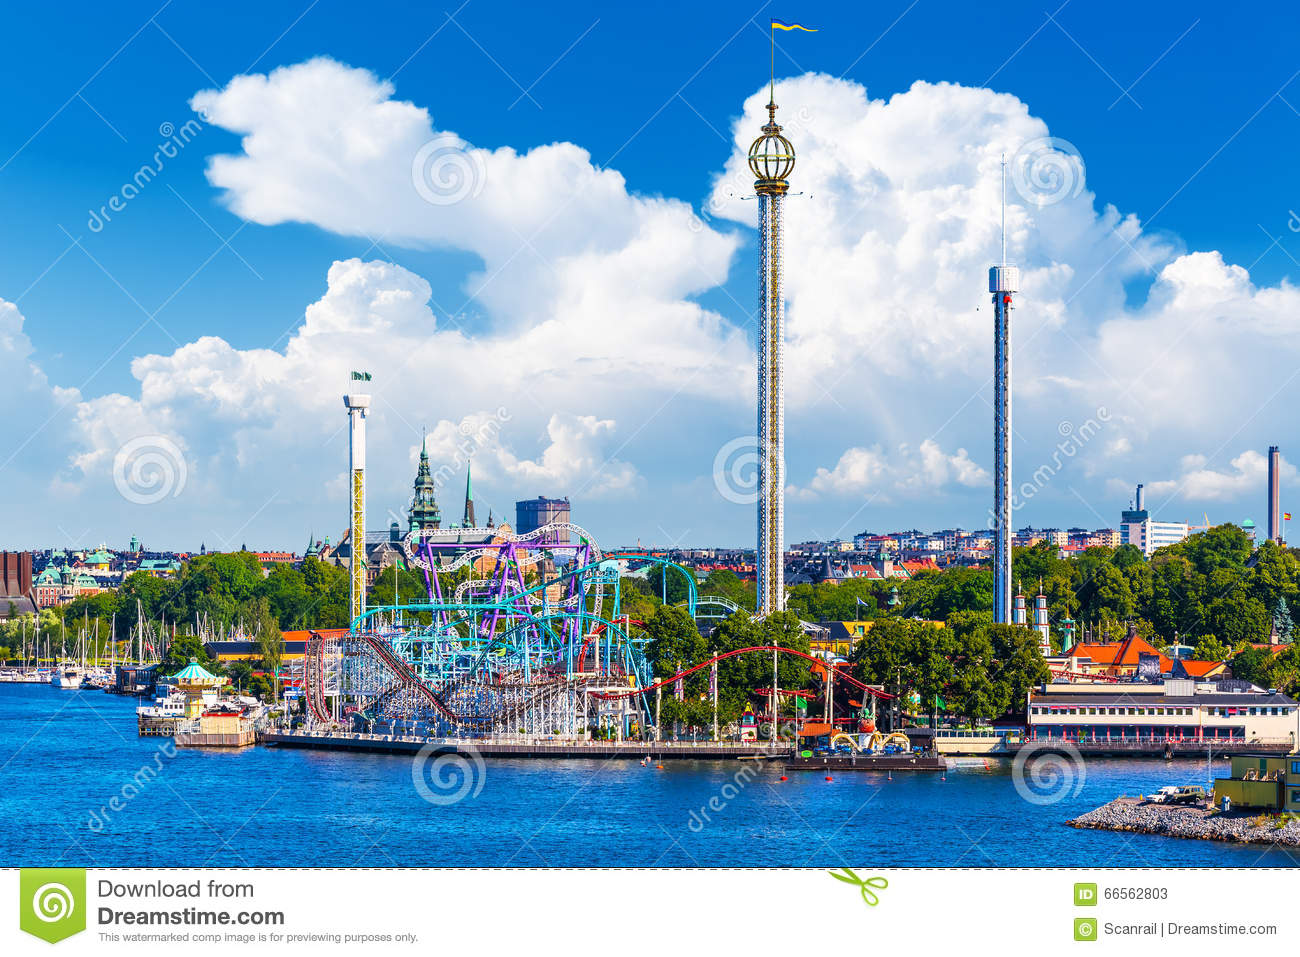 Amusement Park Grona Lund On Djurgarden Island In Stockholm, Swe.